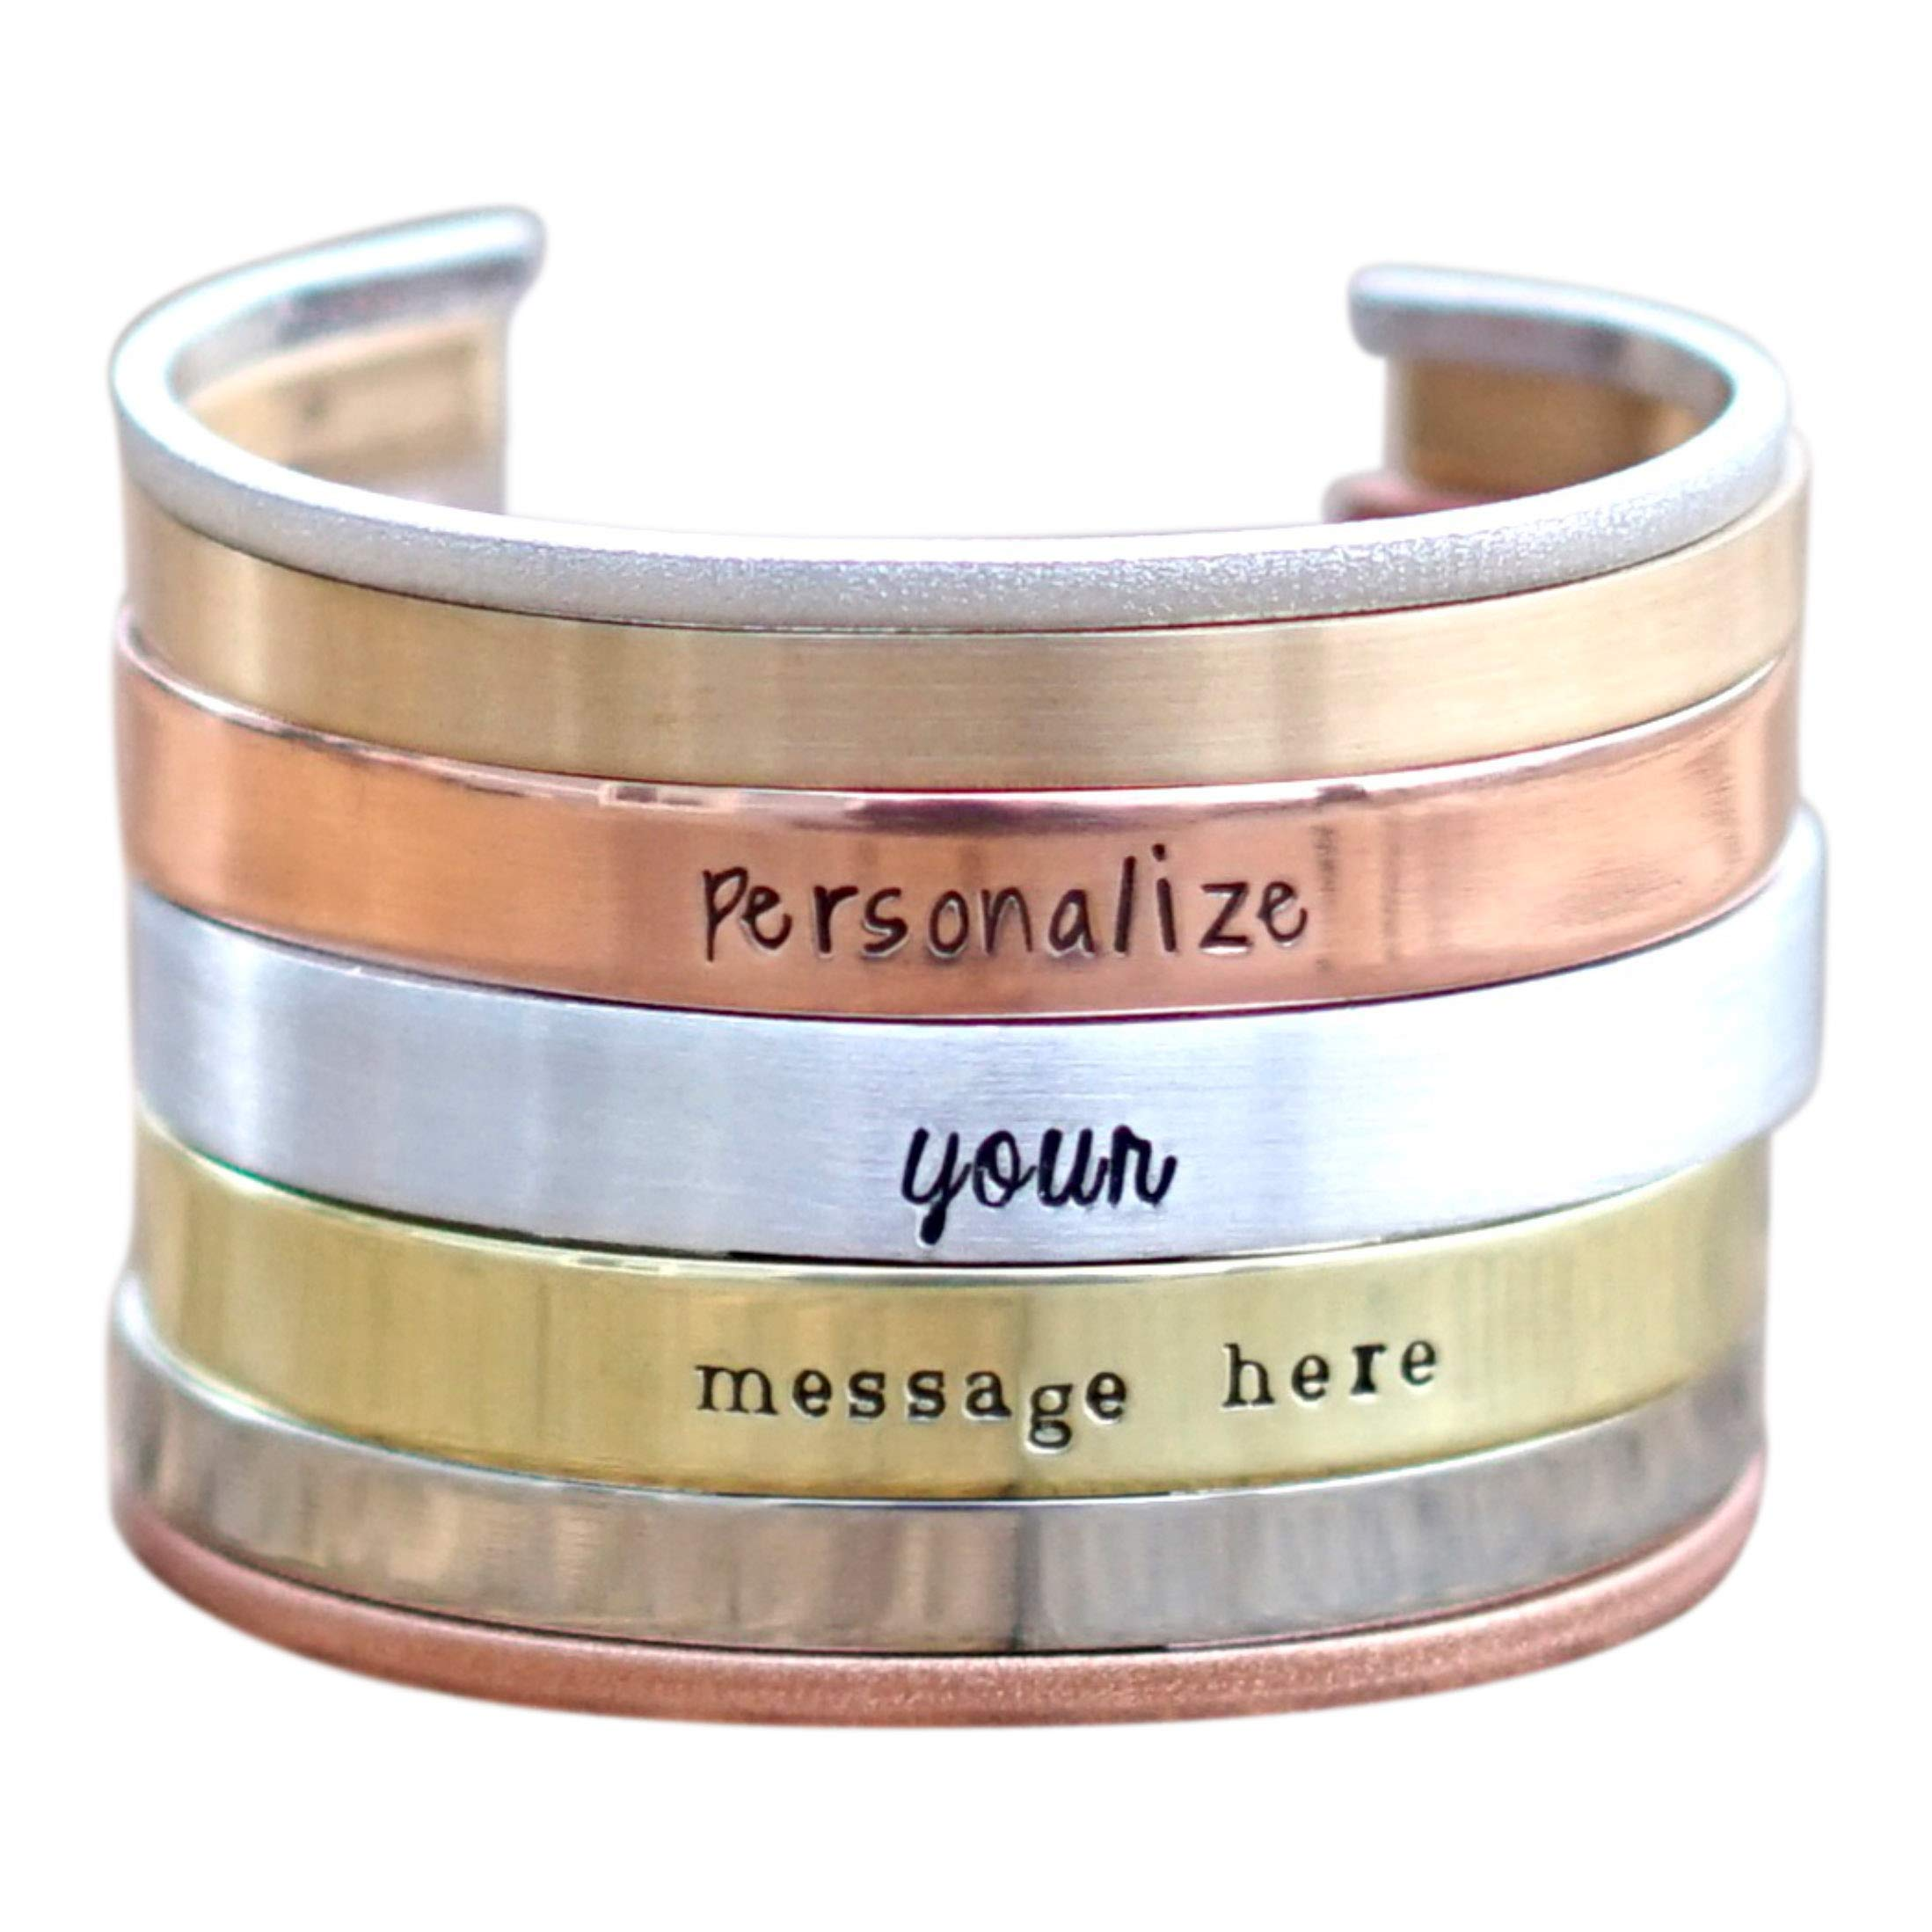 IF - Personalized Cuff Bracelet in Silver, Bronze, Nickel, Gold, or Copper, 5-8'' Long by IF Only Pretty